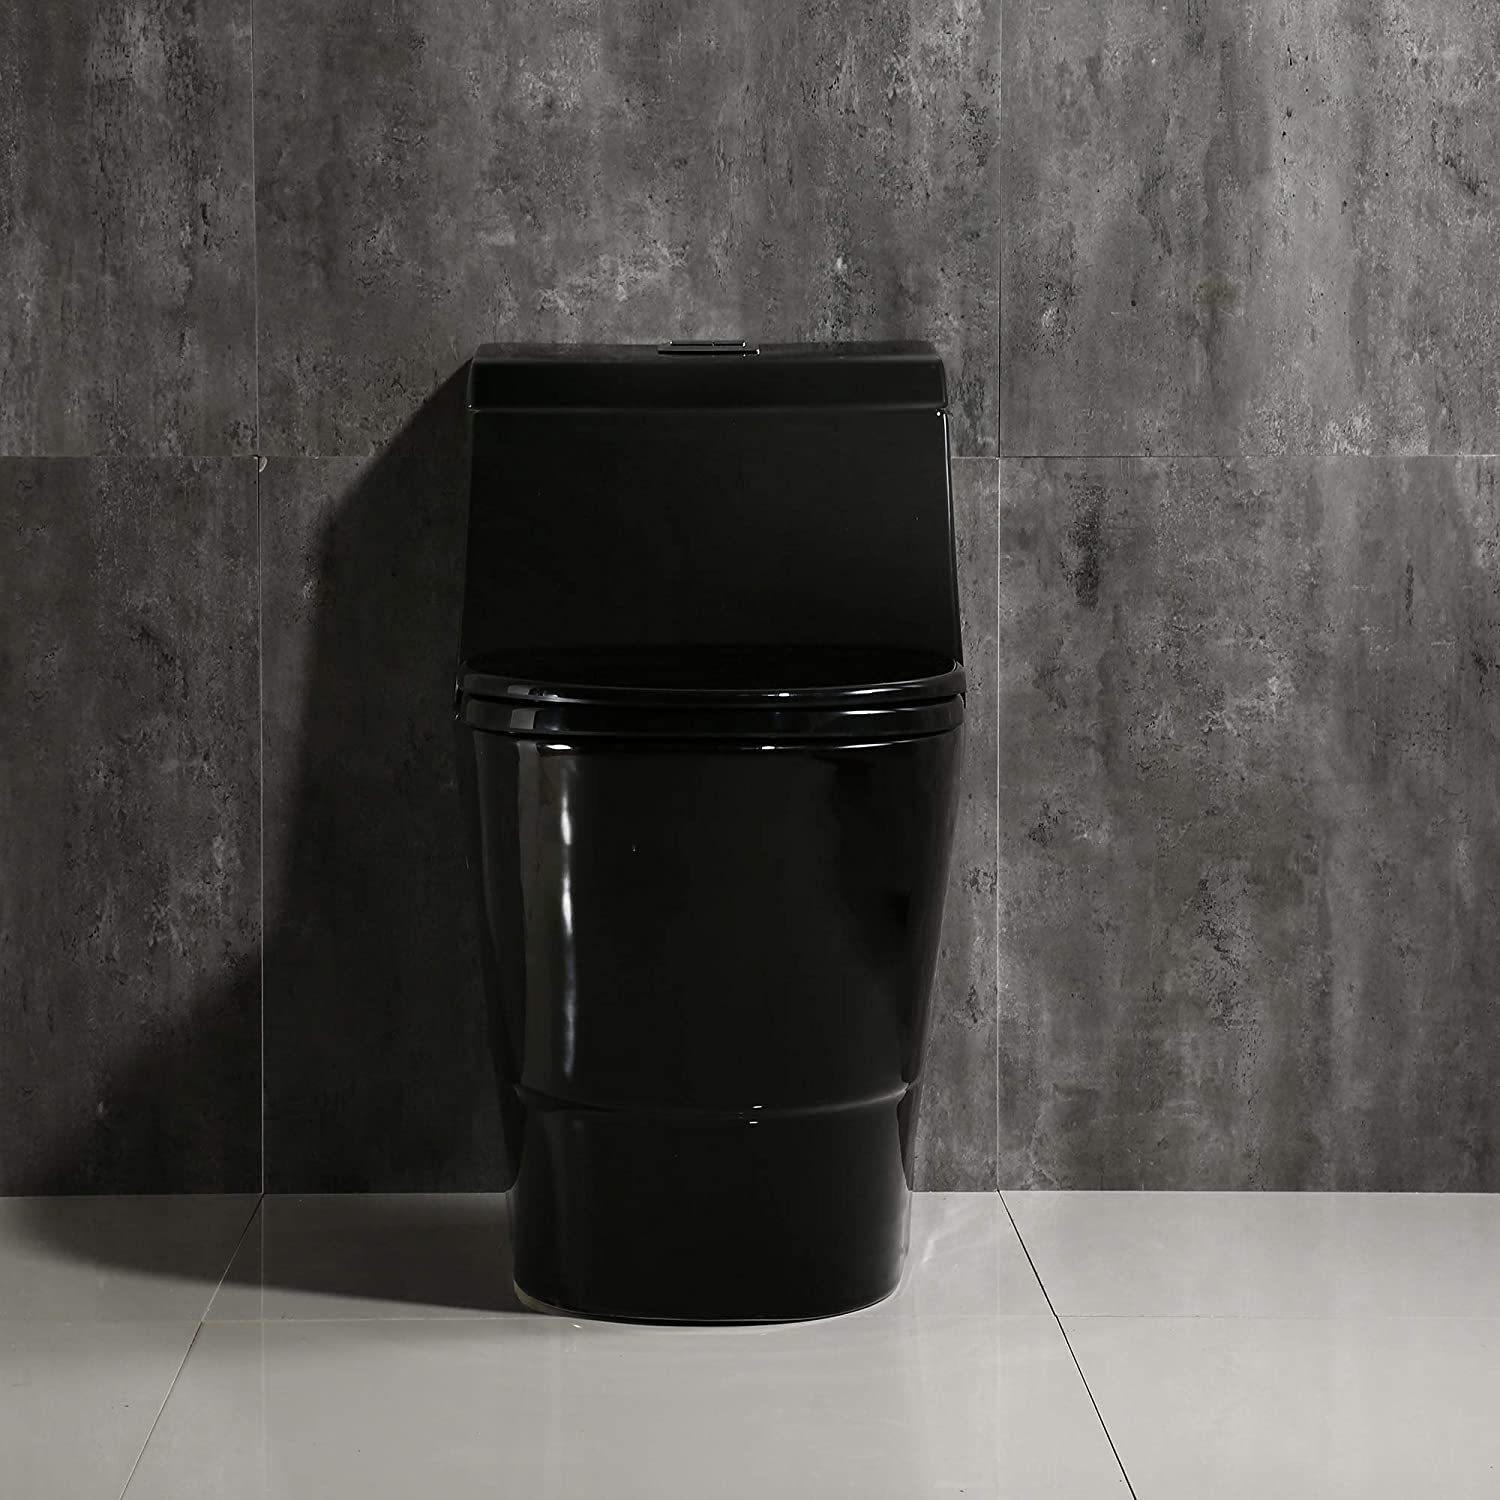 Woodbridge B0941 Modern One Piece Toilet with Soft Closing Seat,Black Color